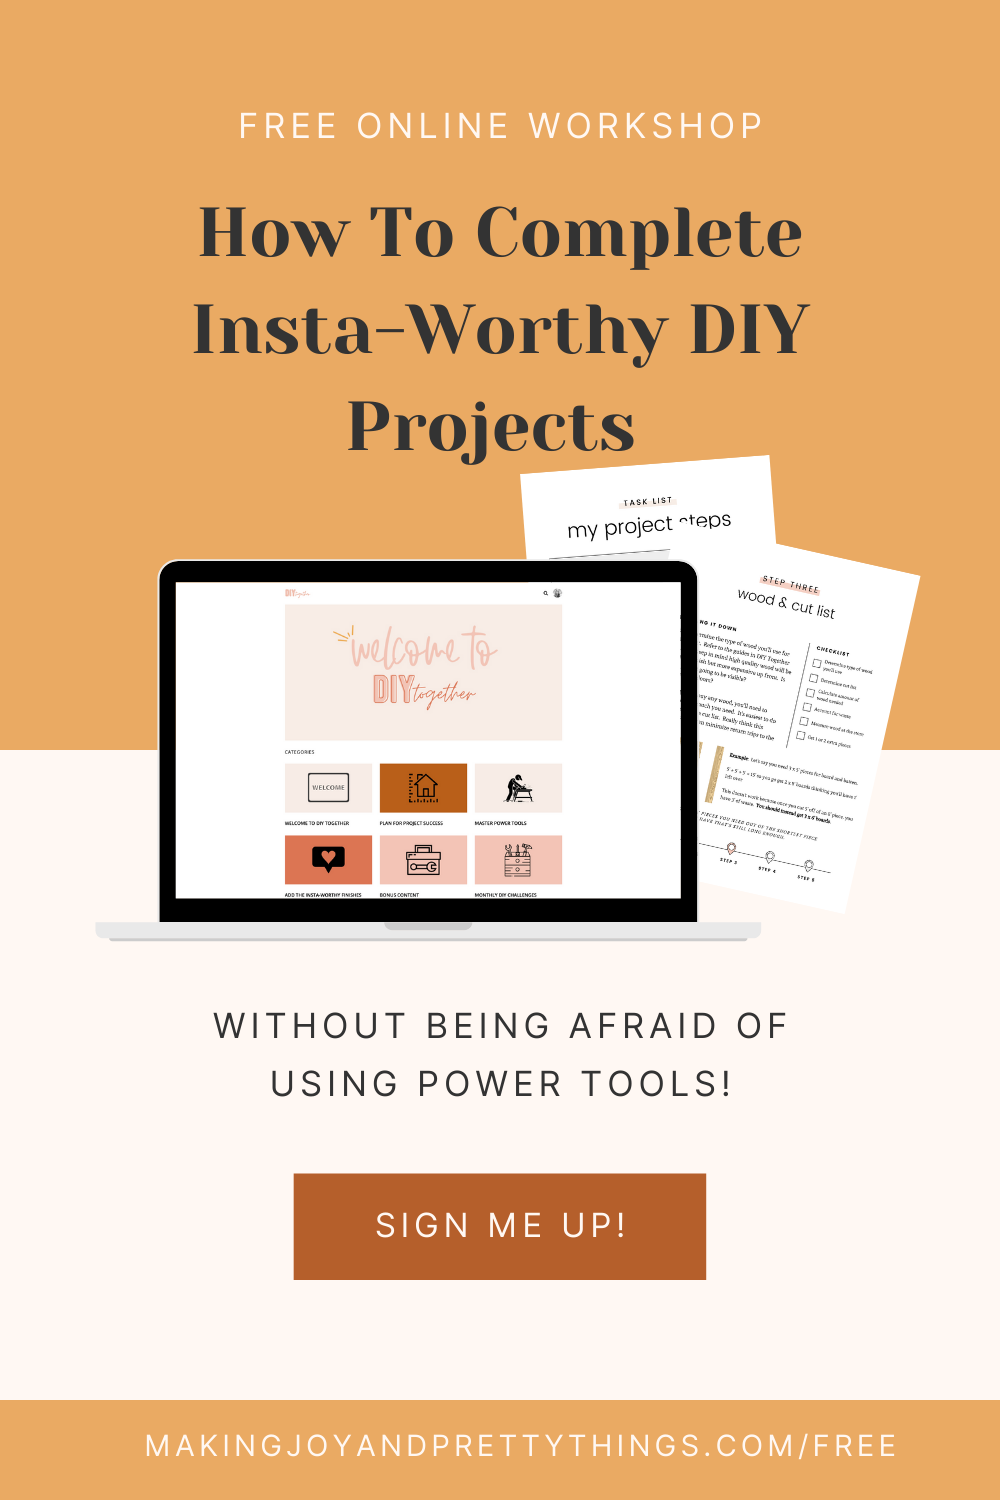 How To Complete Insta Worthy Diy Projects Without Being Afraid Of Using Power Tools Free Workshop In 2021 Used Power Tools Diy Projects Online Workshop